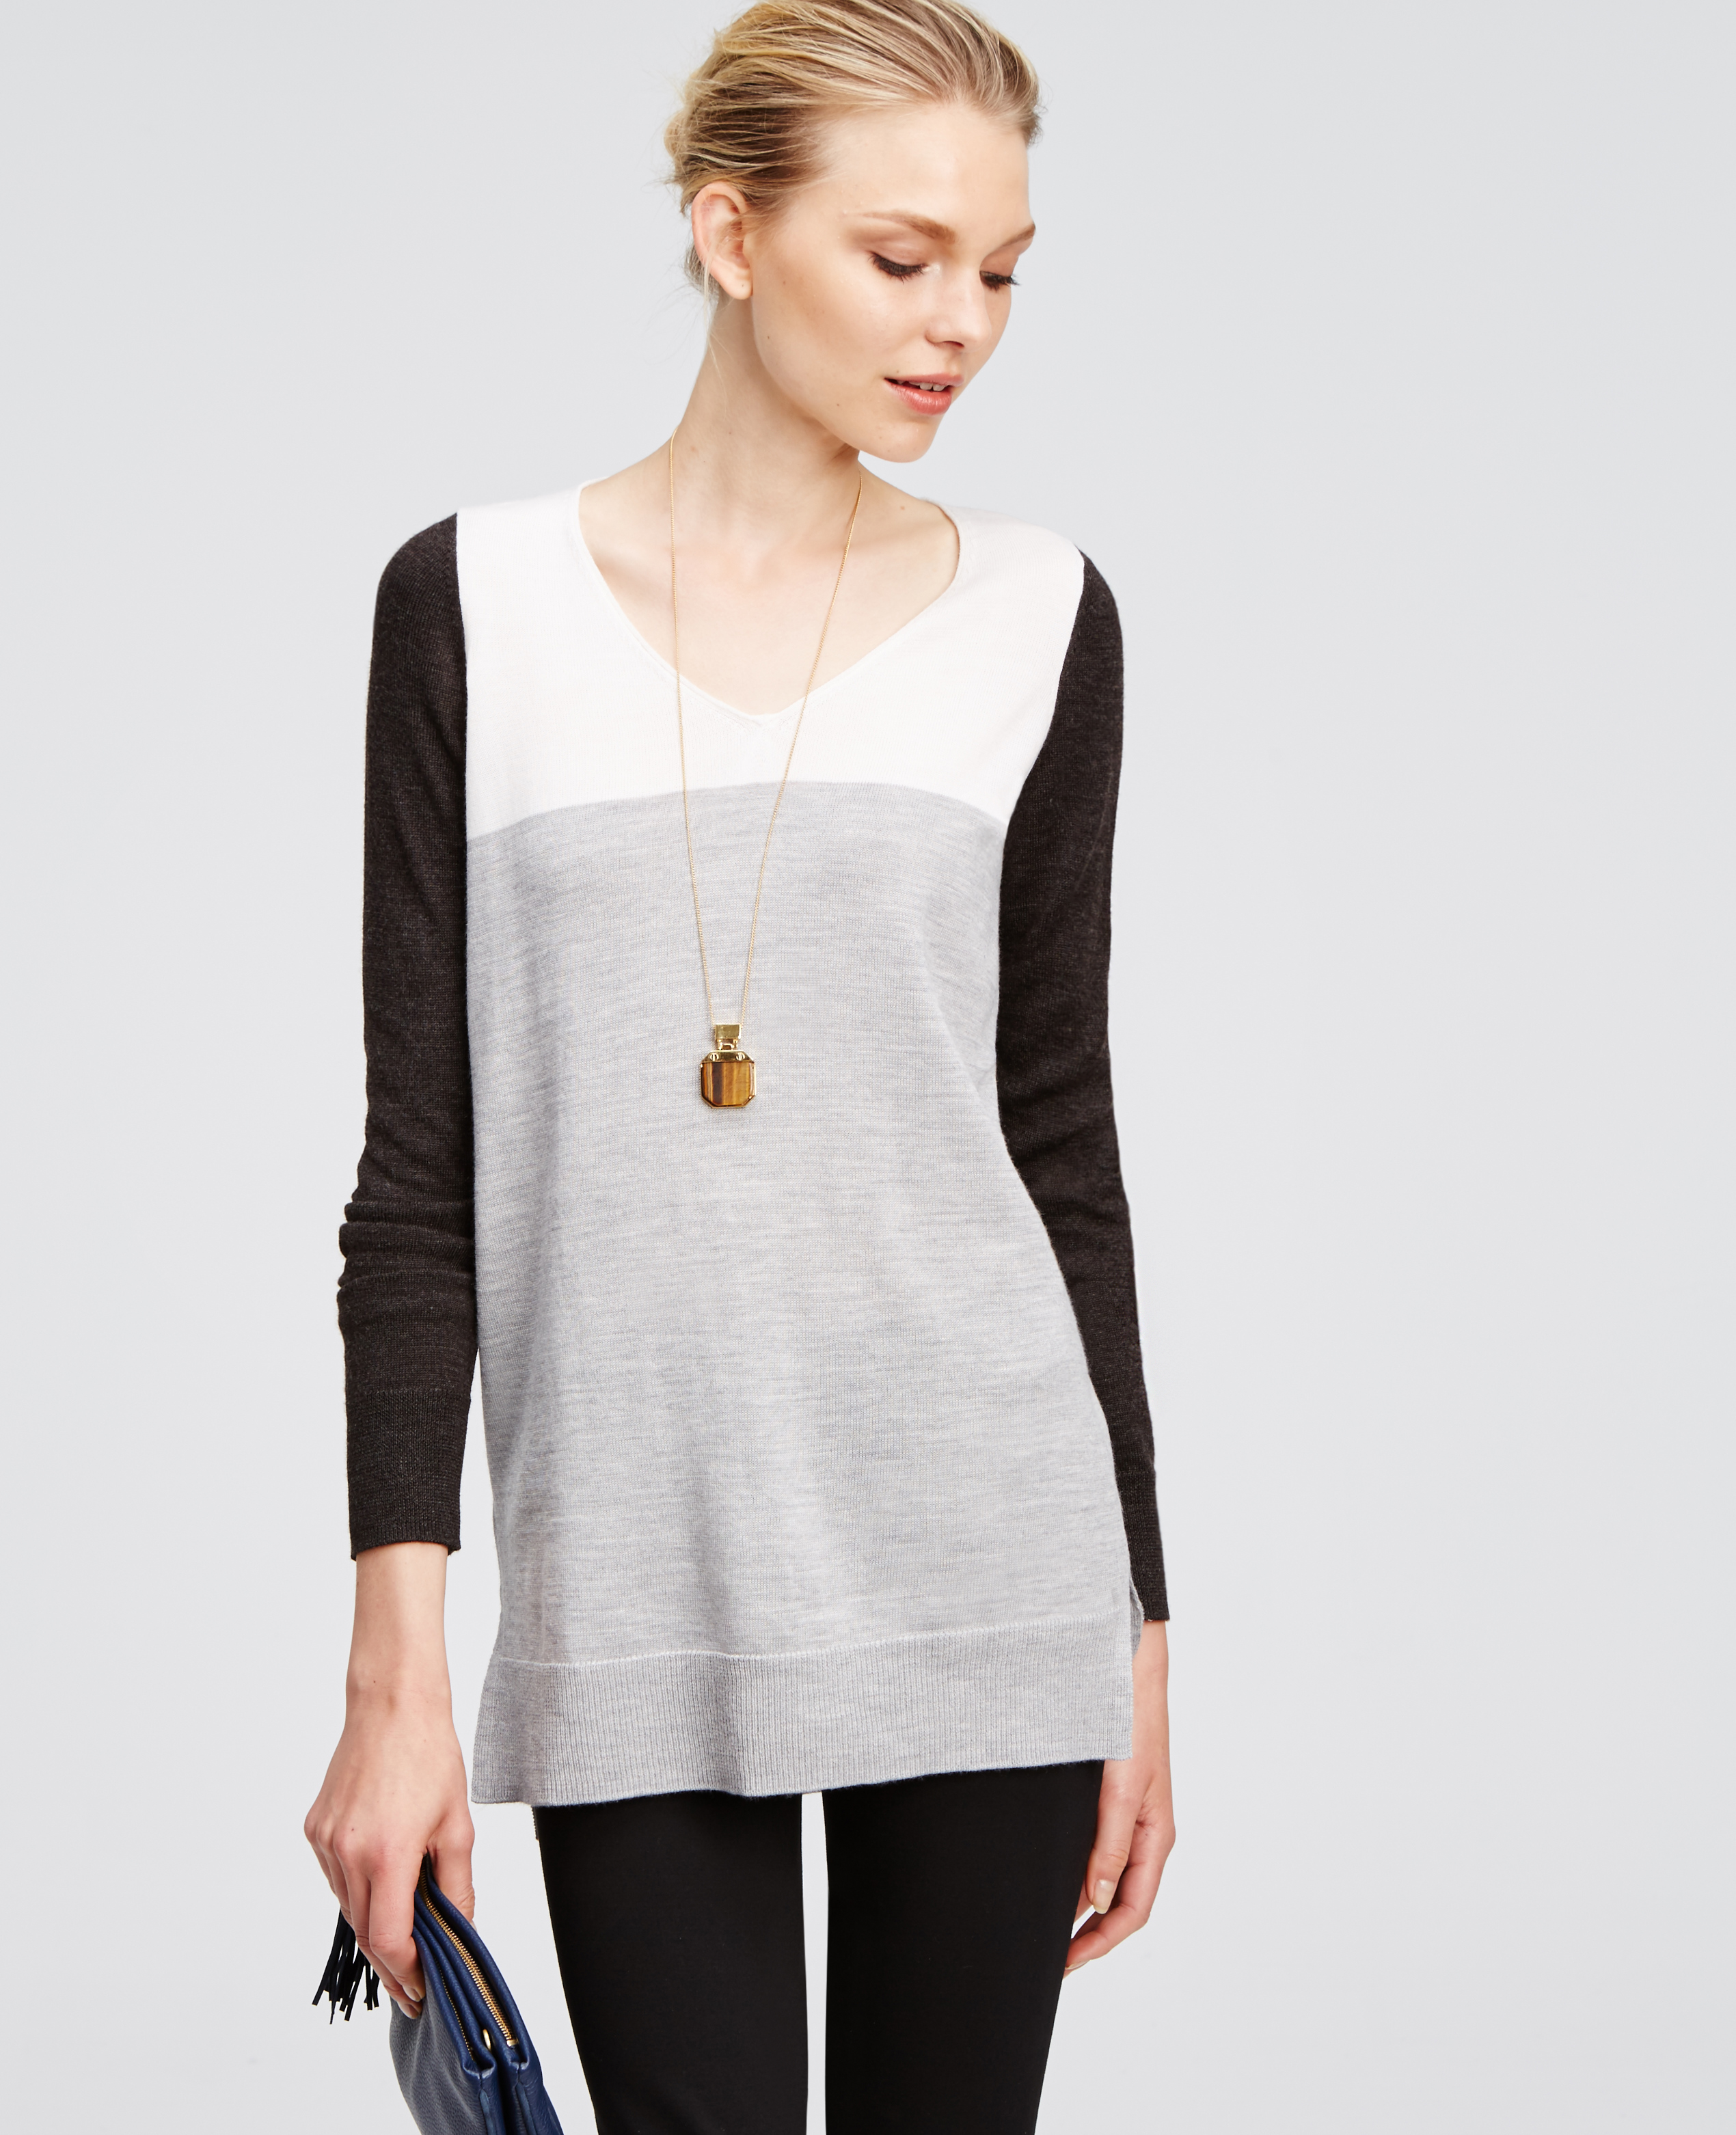 Ann taylor Colorblock V-neck Tunic Sweater in Black | Lyst